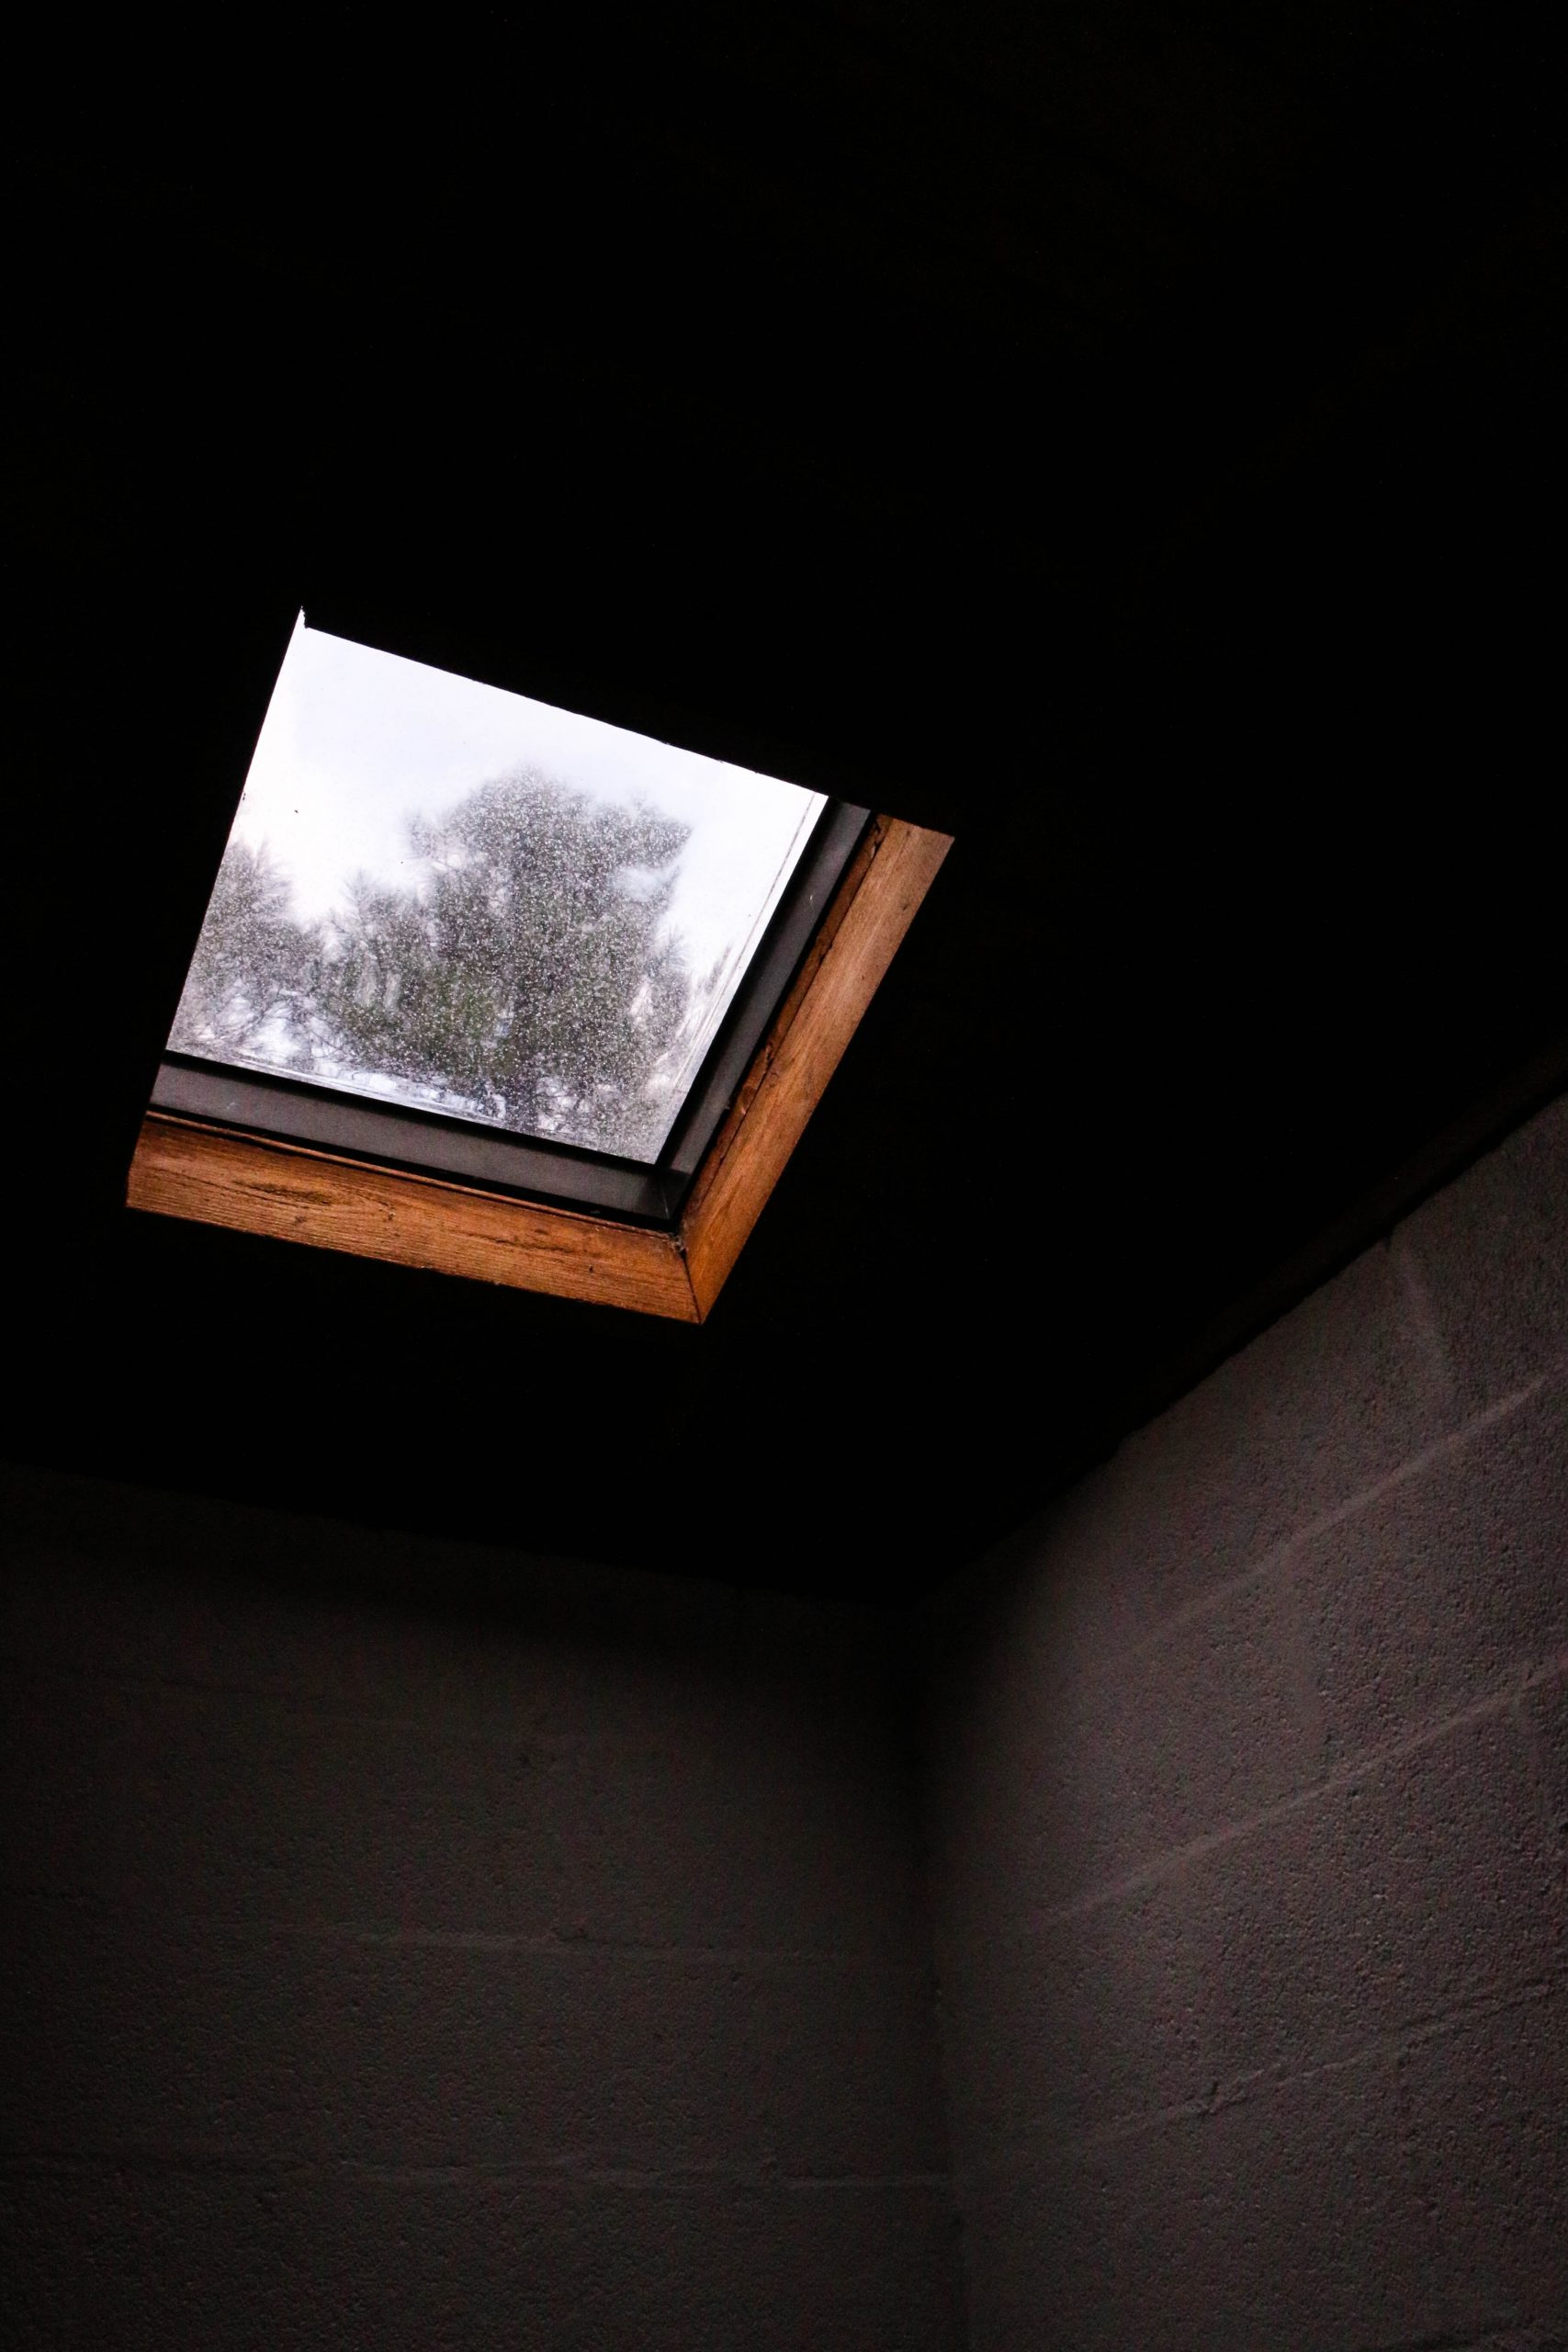 How To Remove Skylight and Roof Cover